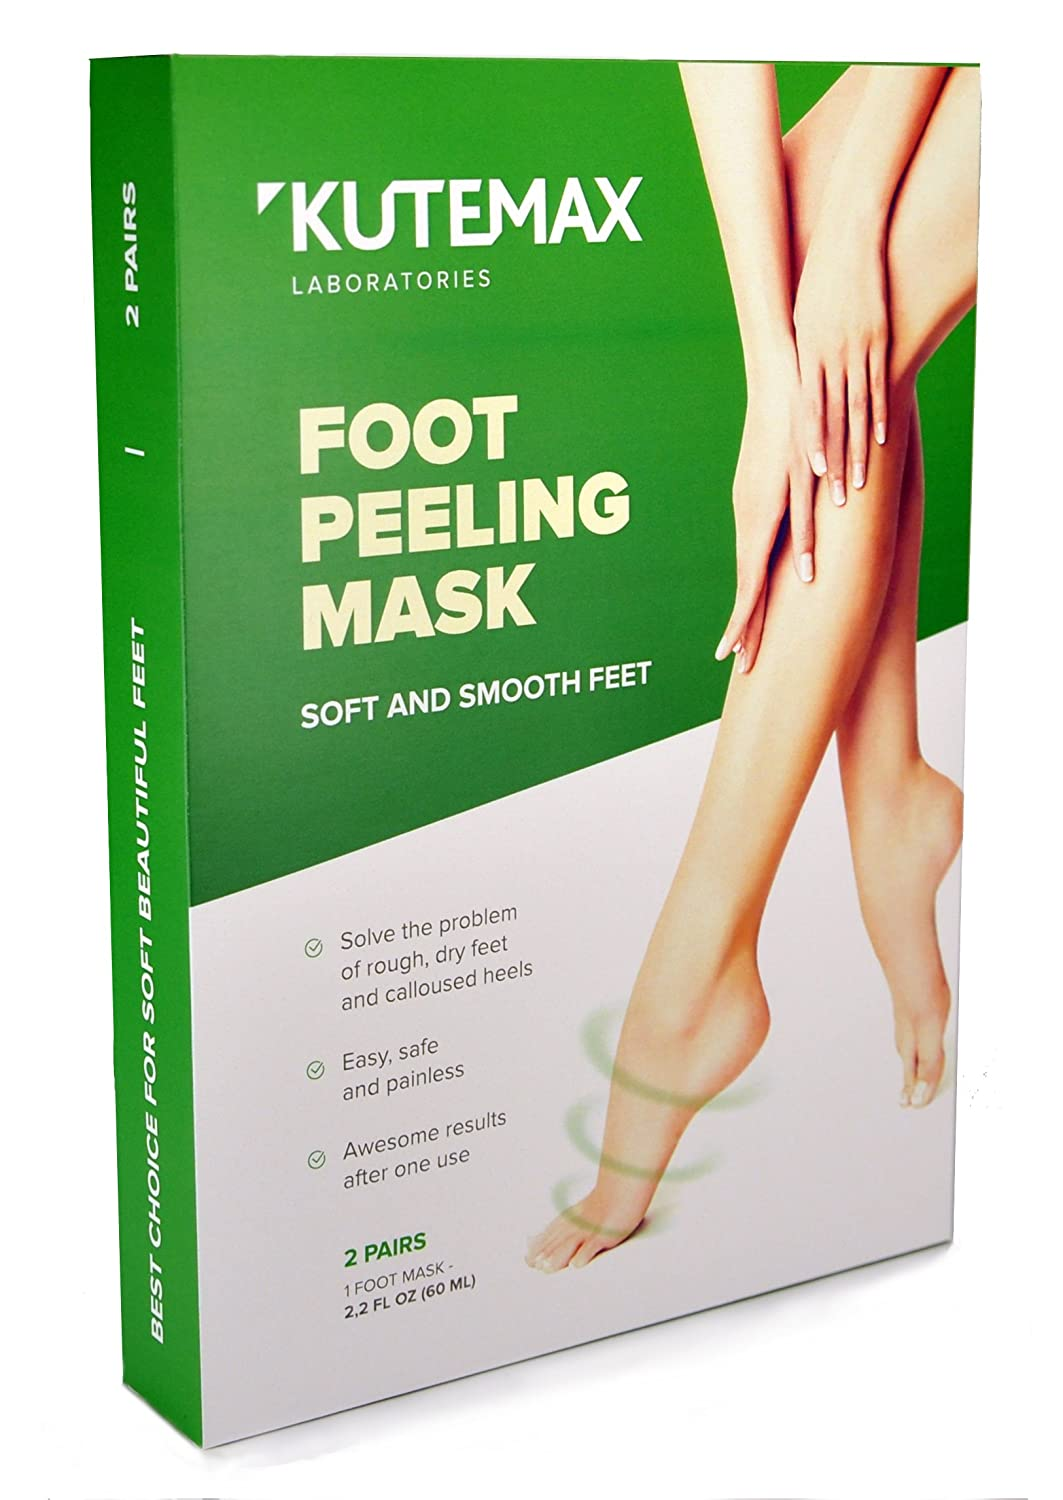 Foot Peel Mask NEW 2018 - Callus and Dead Skin Remover Exfoliation - 2 Pairs of Peeling Socks – Make Your Feet Baby Soft Kutemax